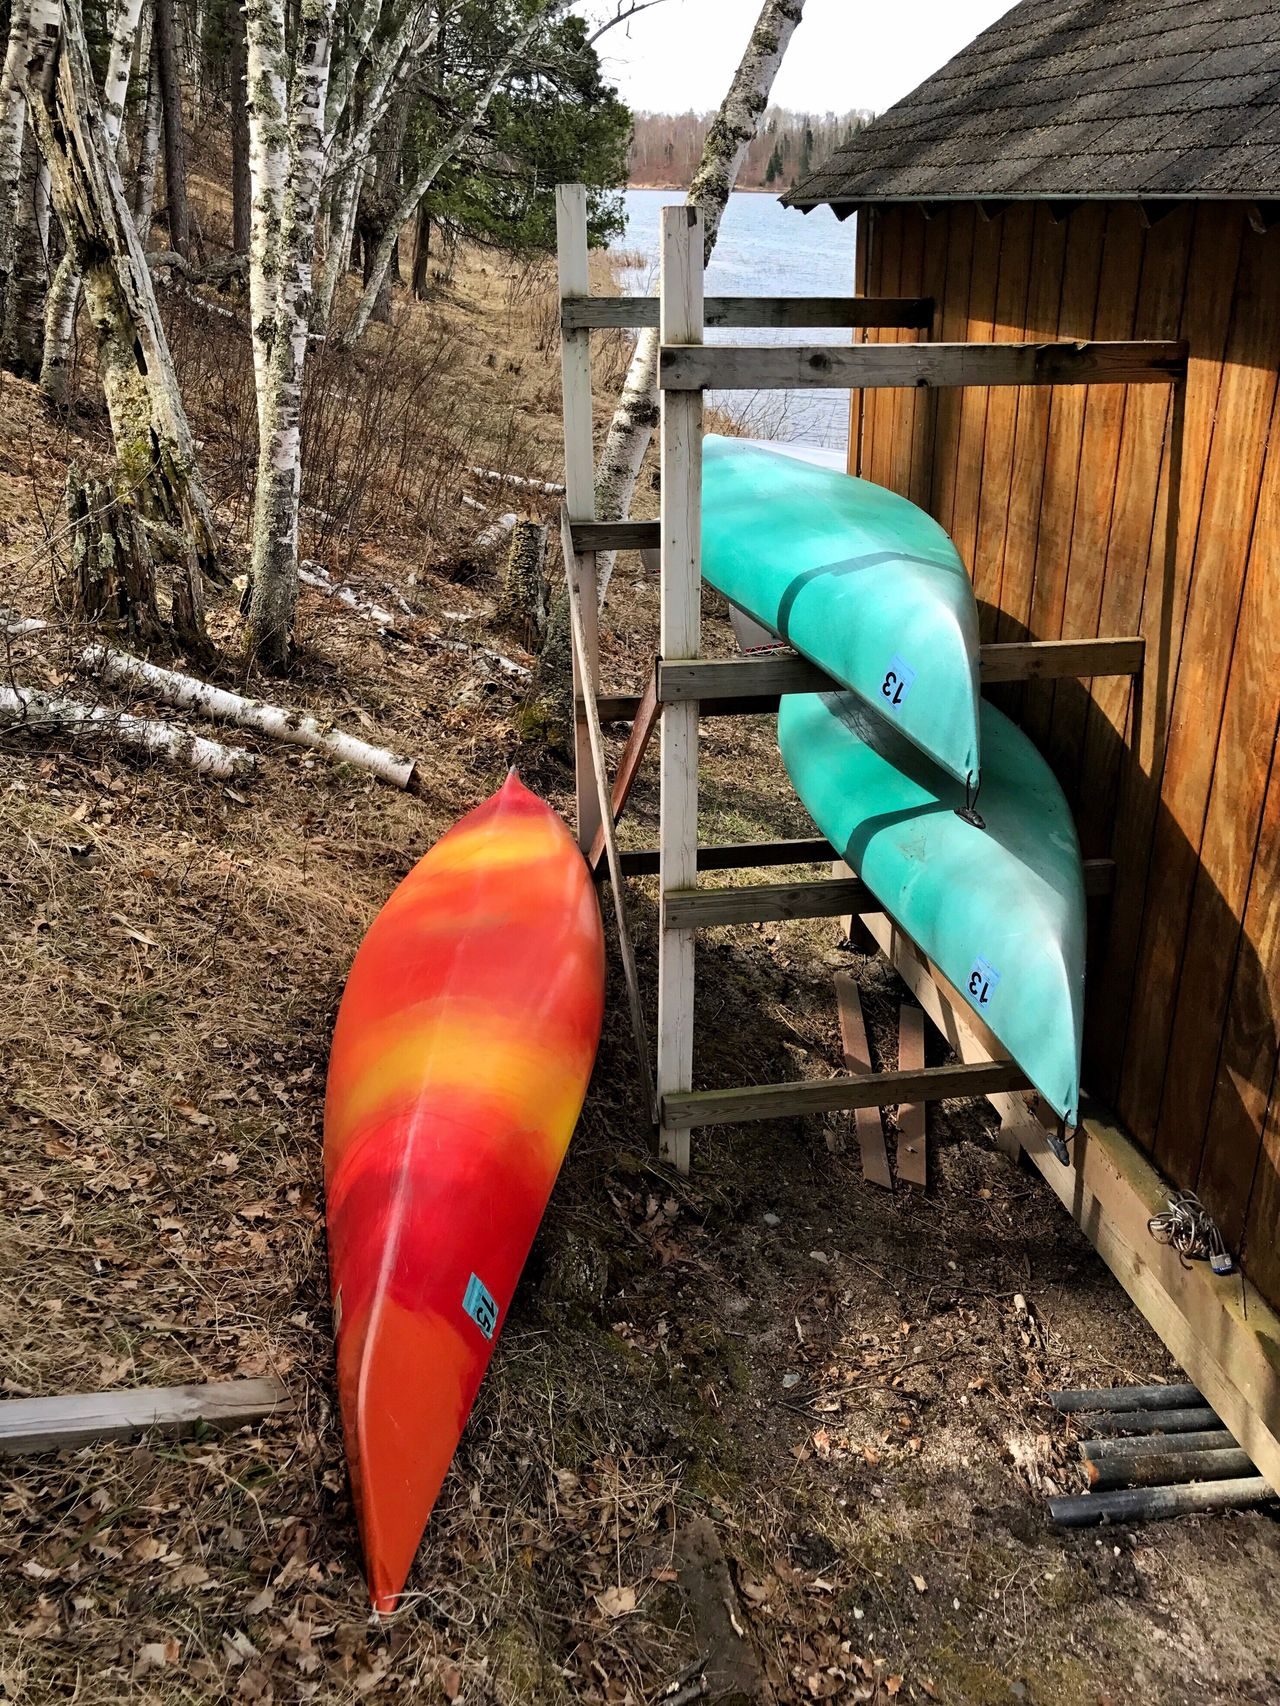 Outdoors Built Structure Leisure Activity Canoes Birch Tree Lake Colors Relaxation Turquoise Orange